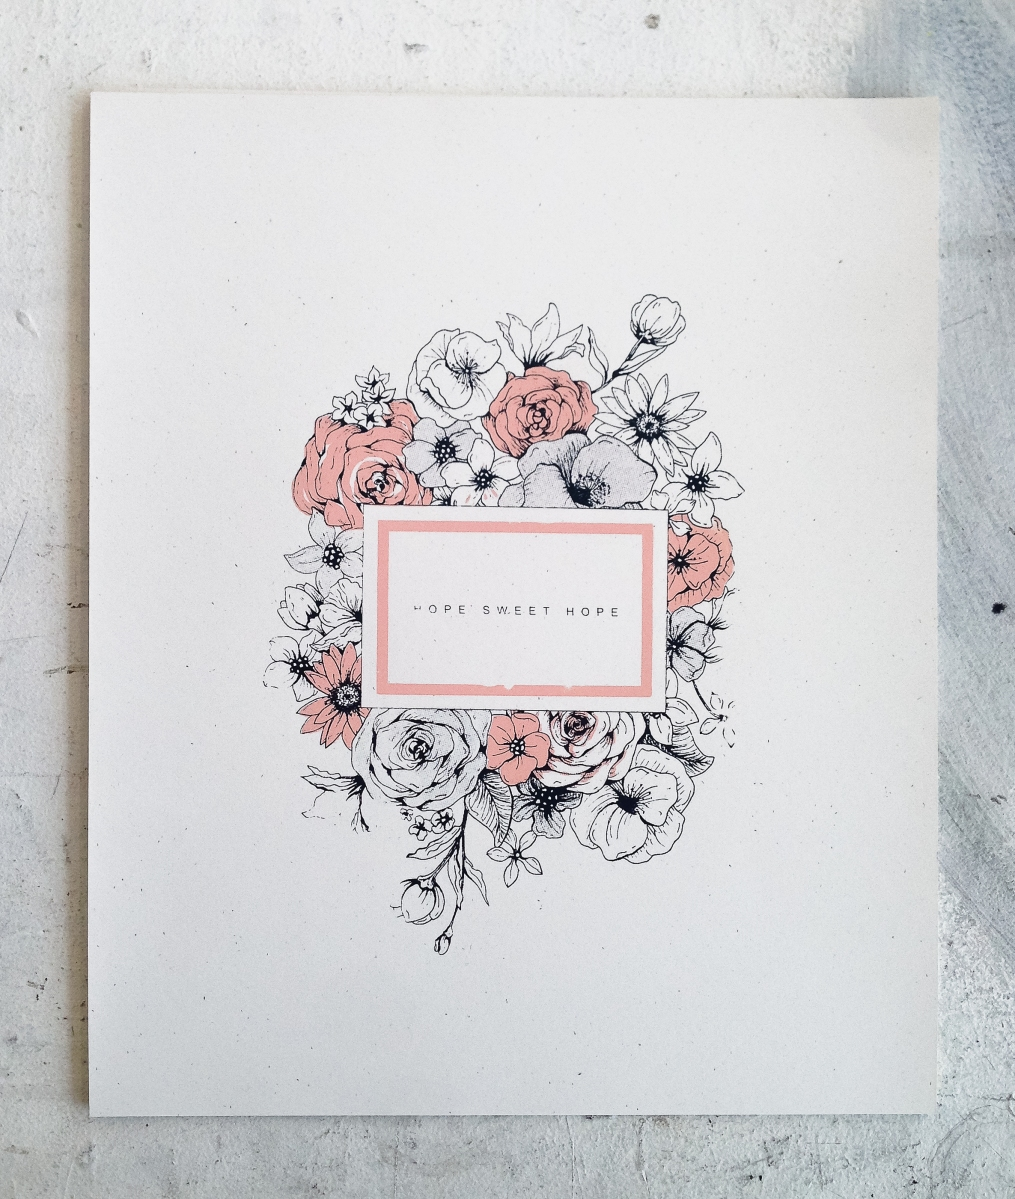 "- AMY ROCHELLE PRESS - ""Hope Sweet Hope"". This art piece of hand illustrated flowers was screen printed on french flecked paper using layers of soft grays and pinks."